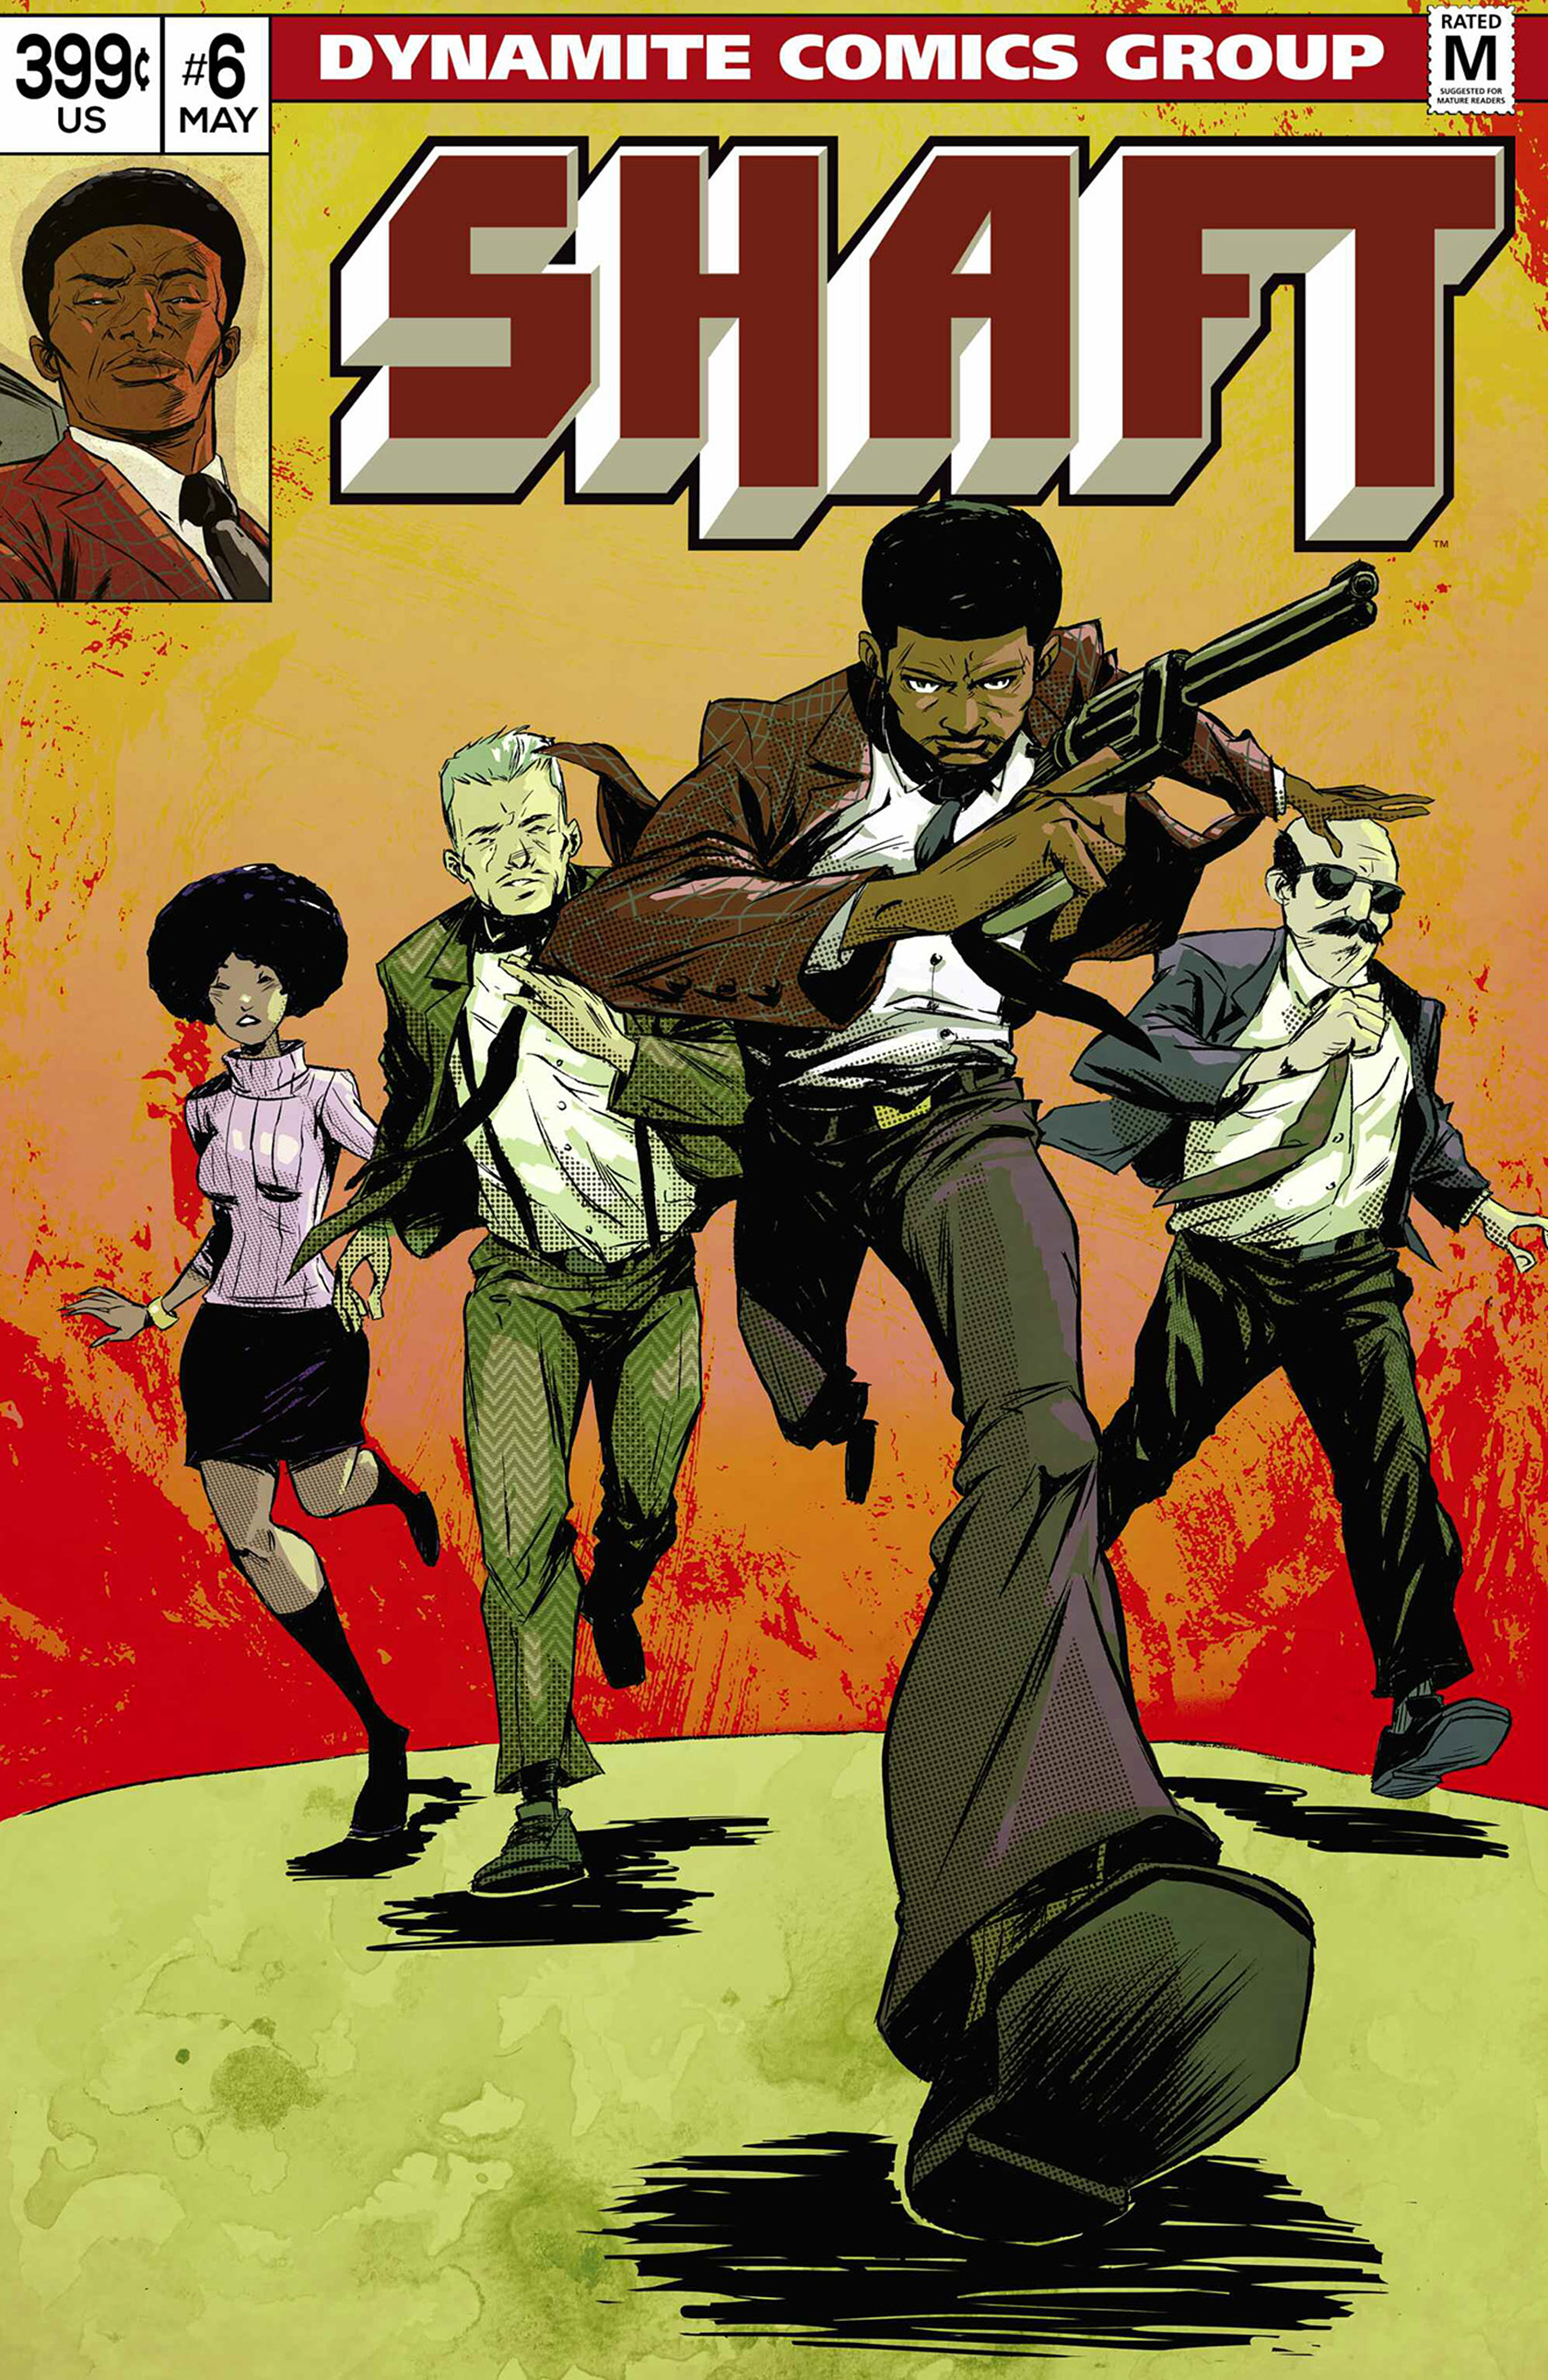 Read online Shaft comic -  Issue #6 - 3